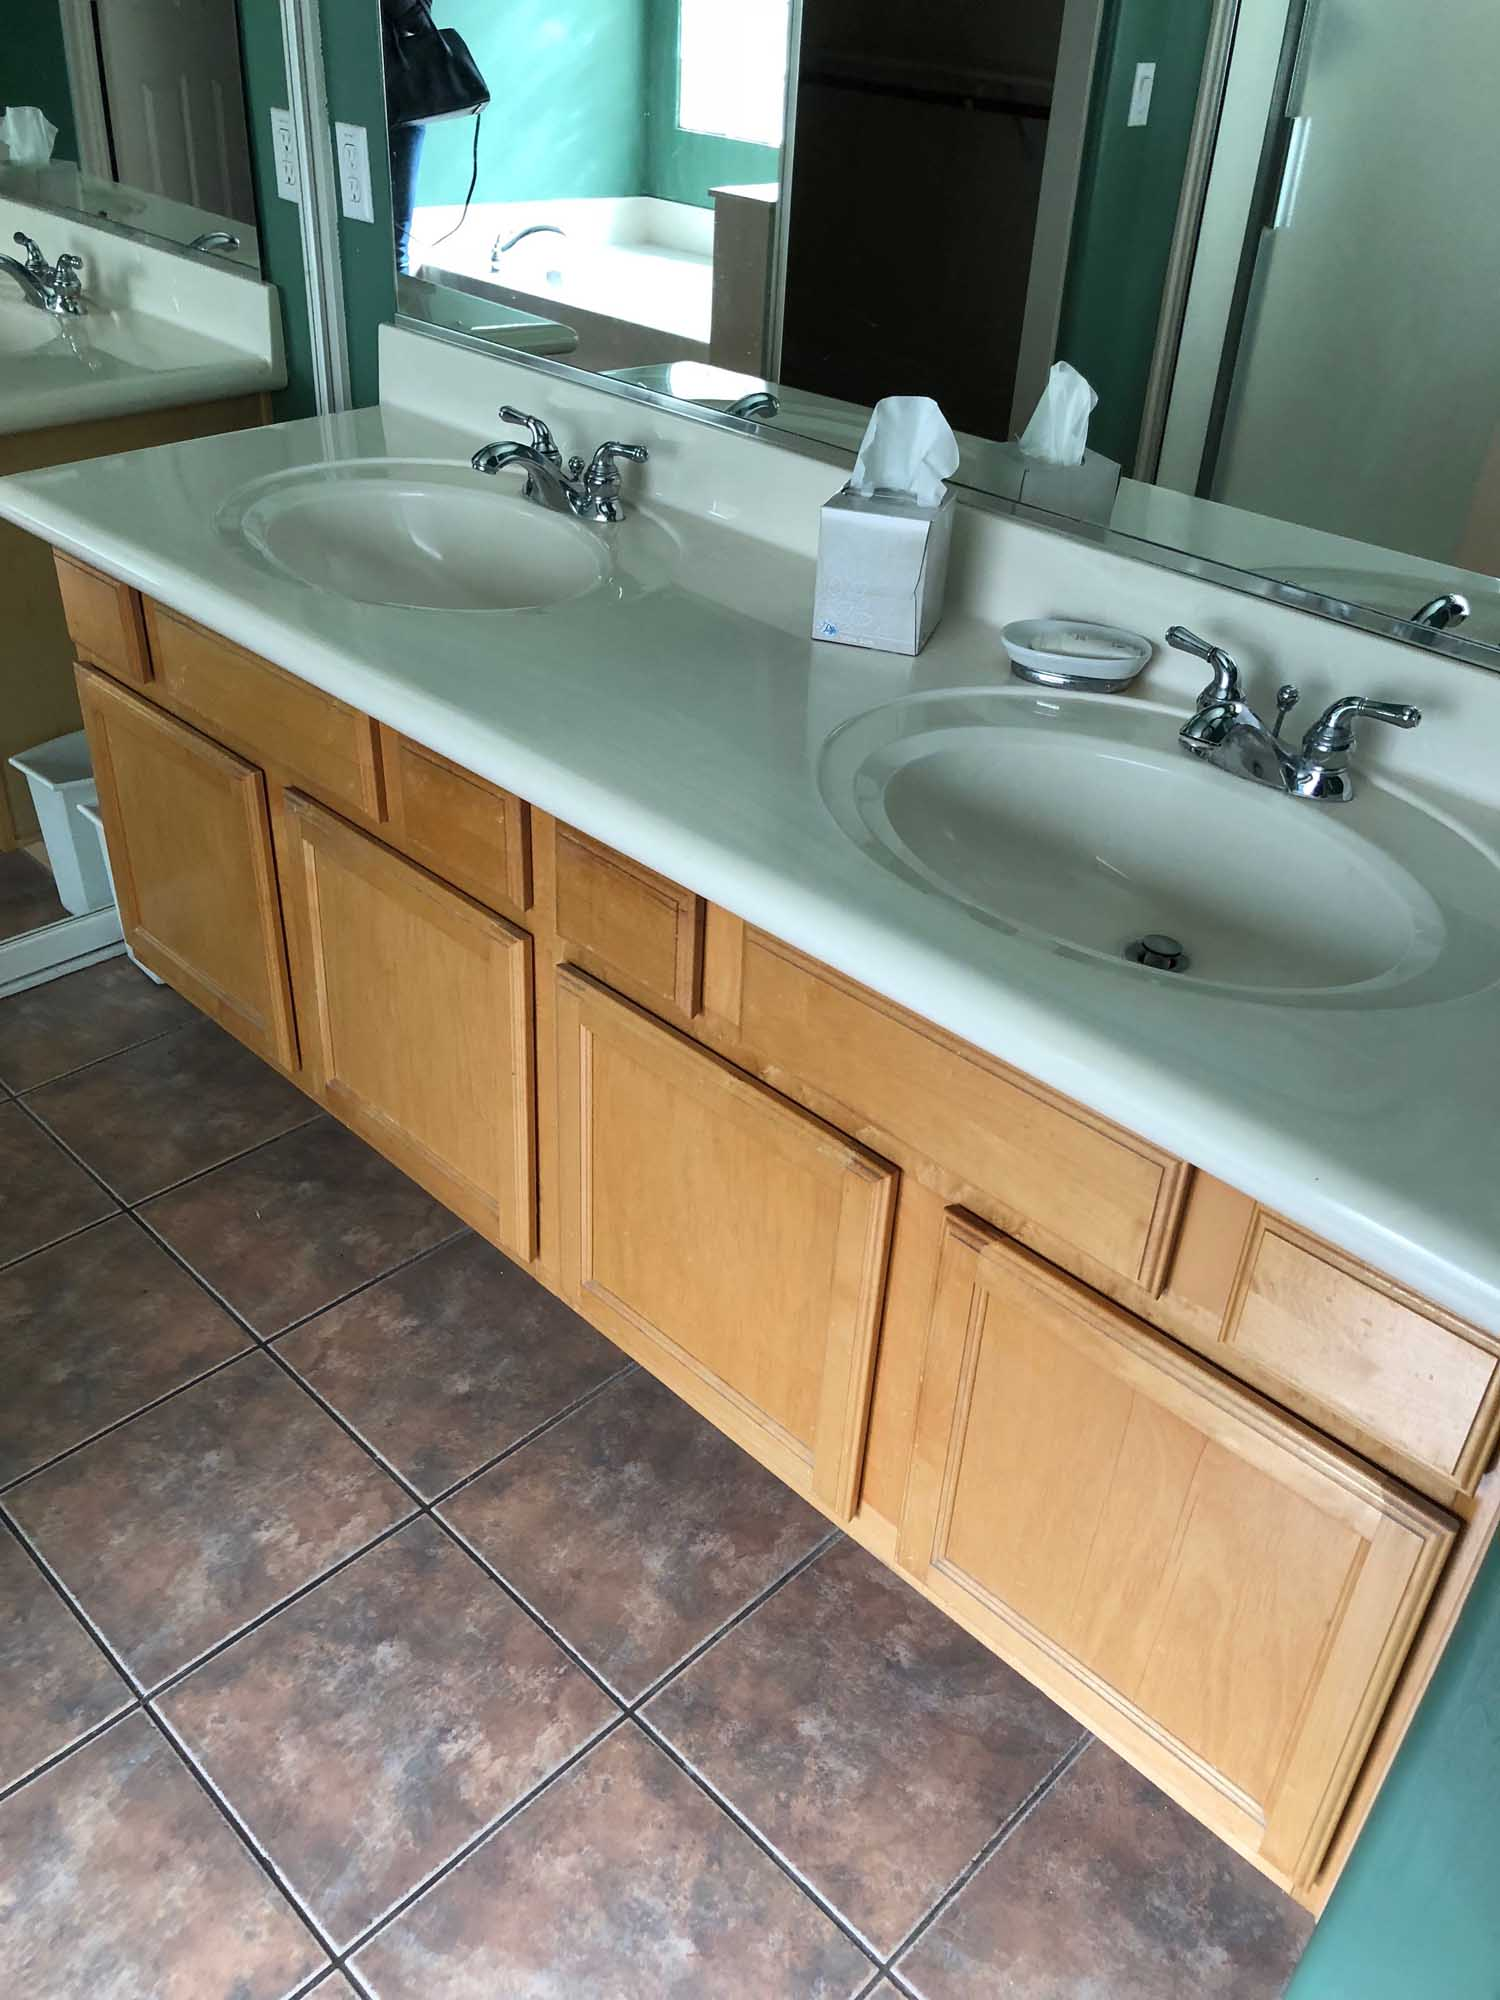 Oval shape sink and faucet with mirror